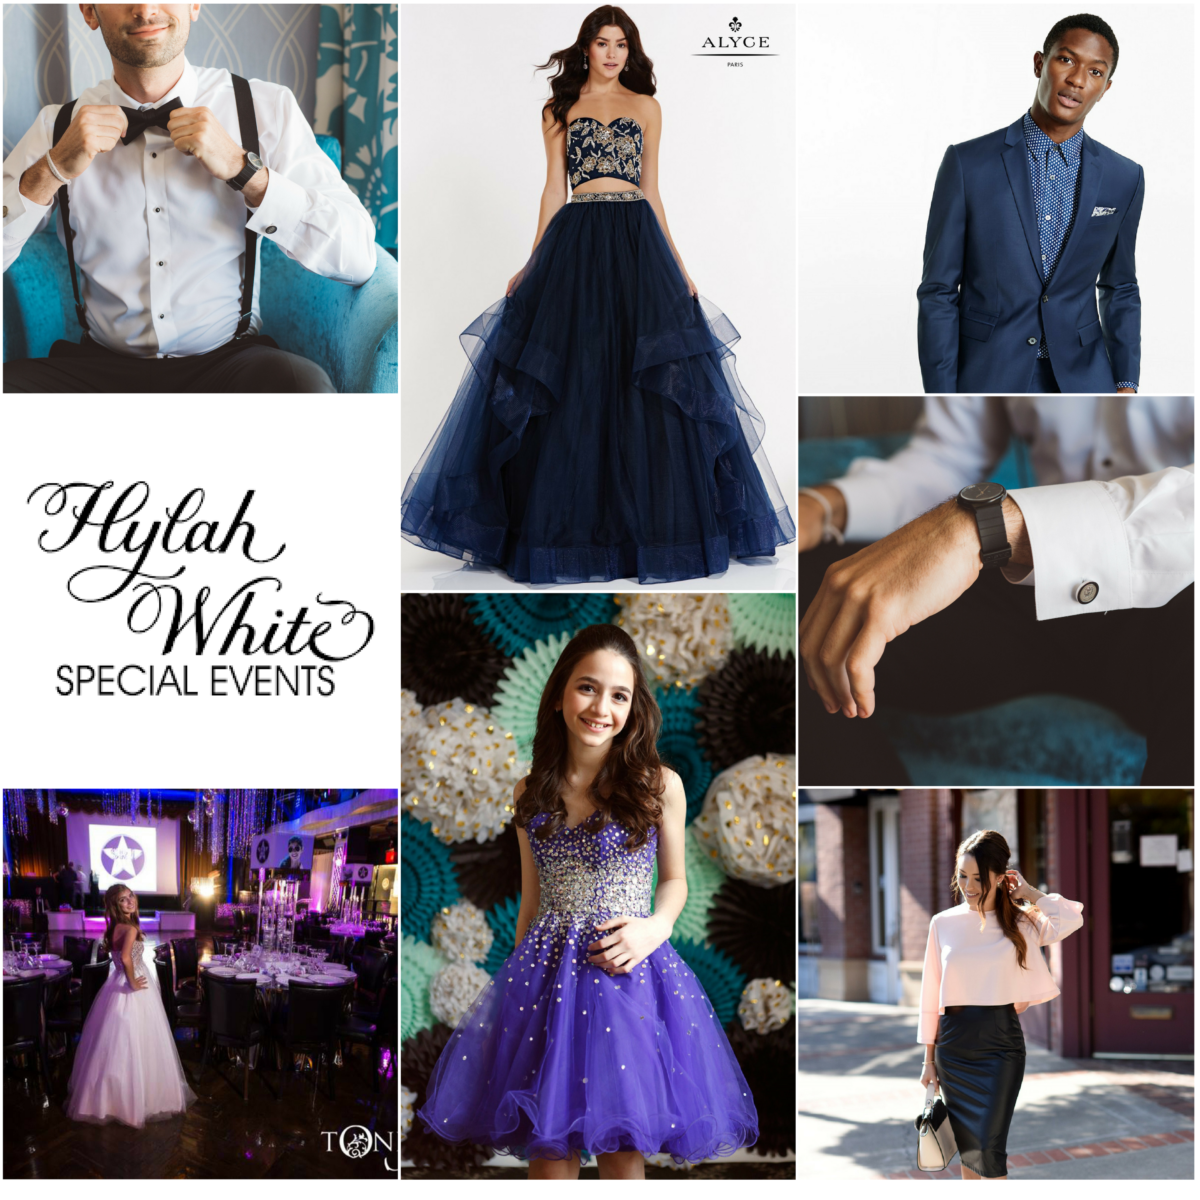 mitzvah attire, bat mitzvah attire, bar mitzvah attire, dress code, ballgown, suit, fashion